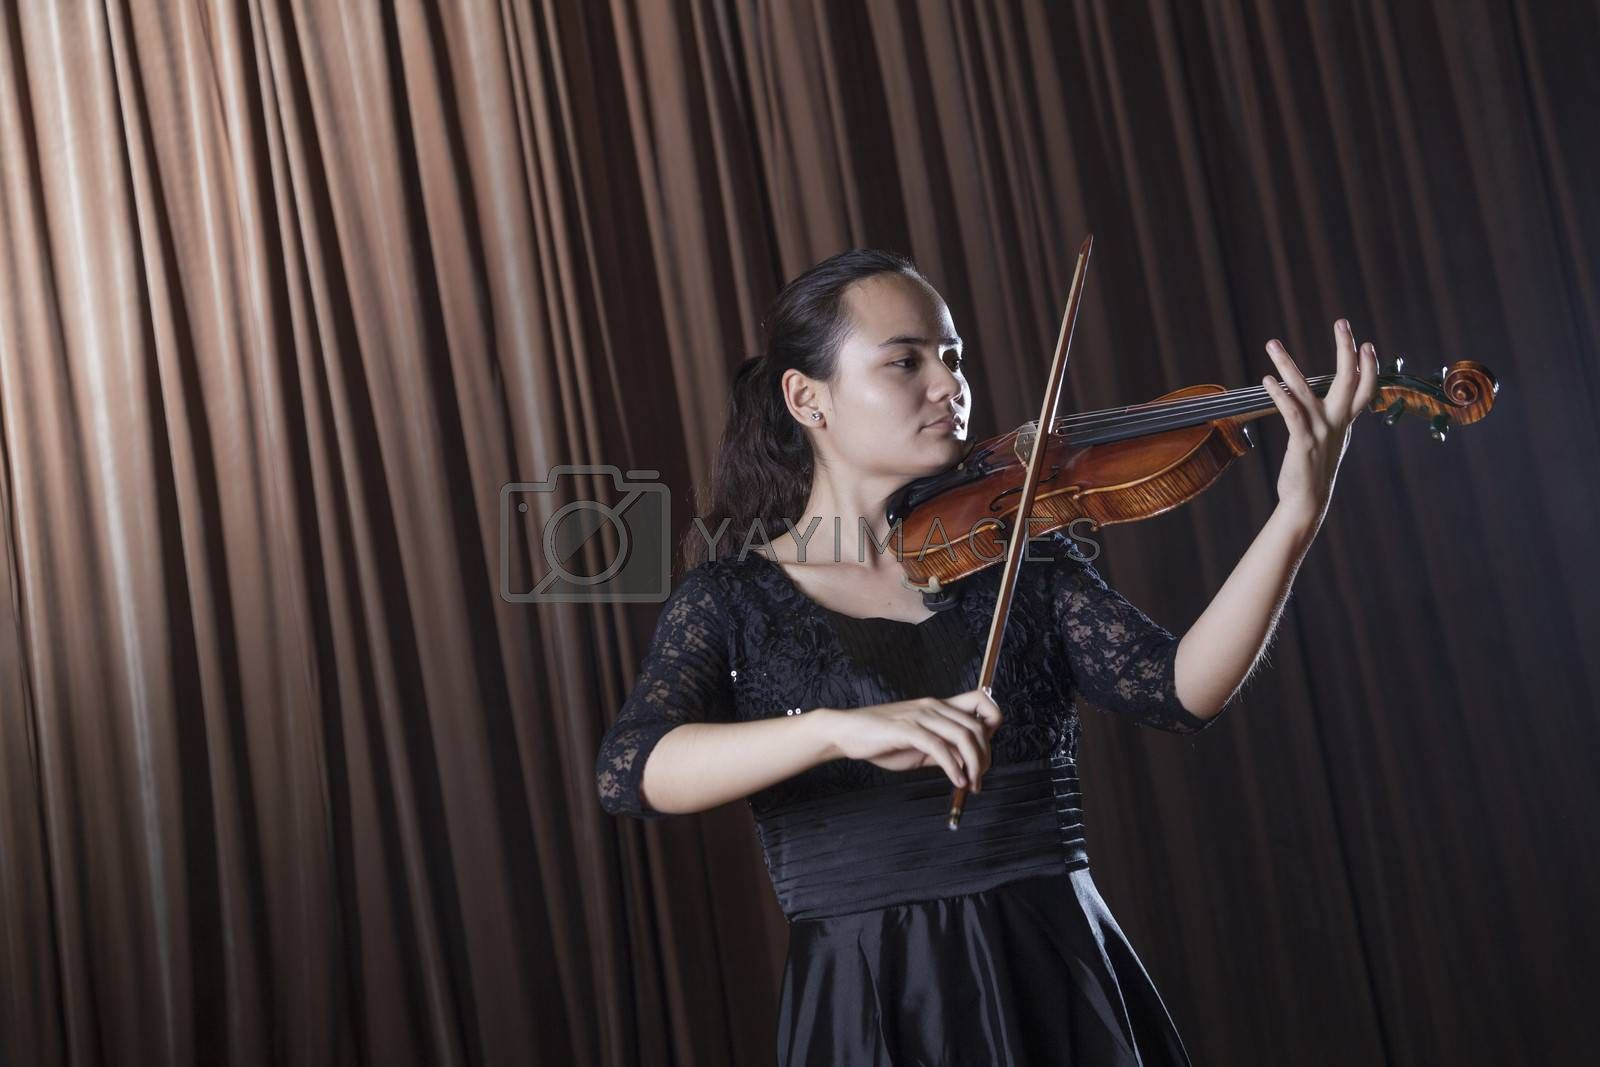 Violinist standing and playing the violin at a performance